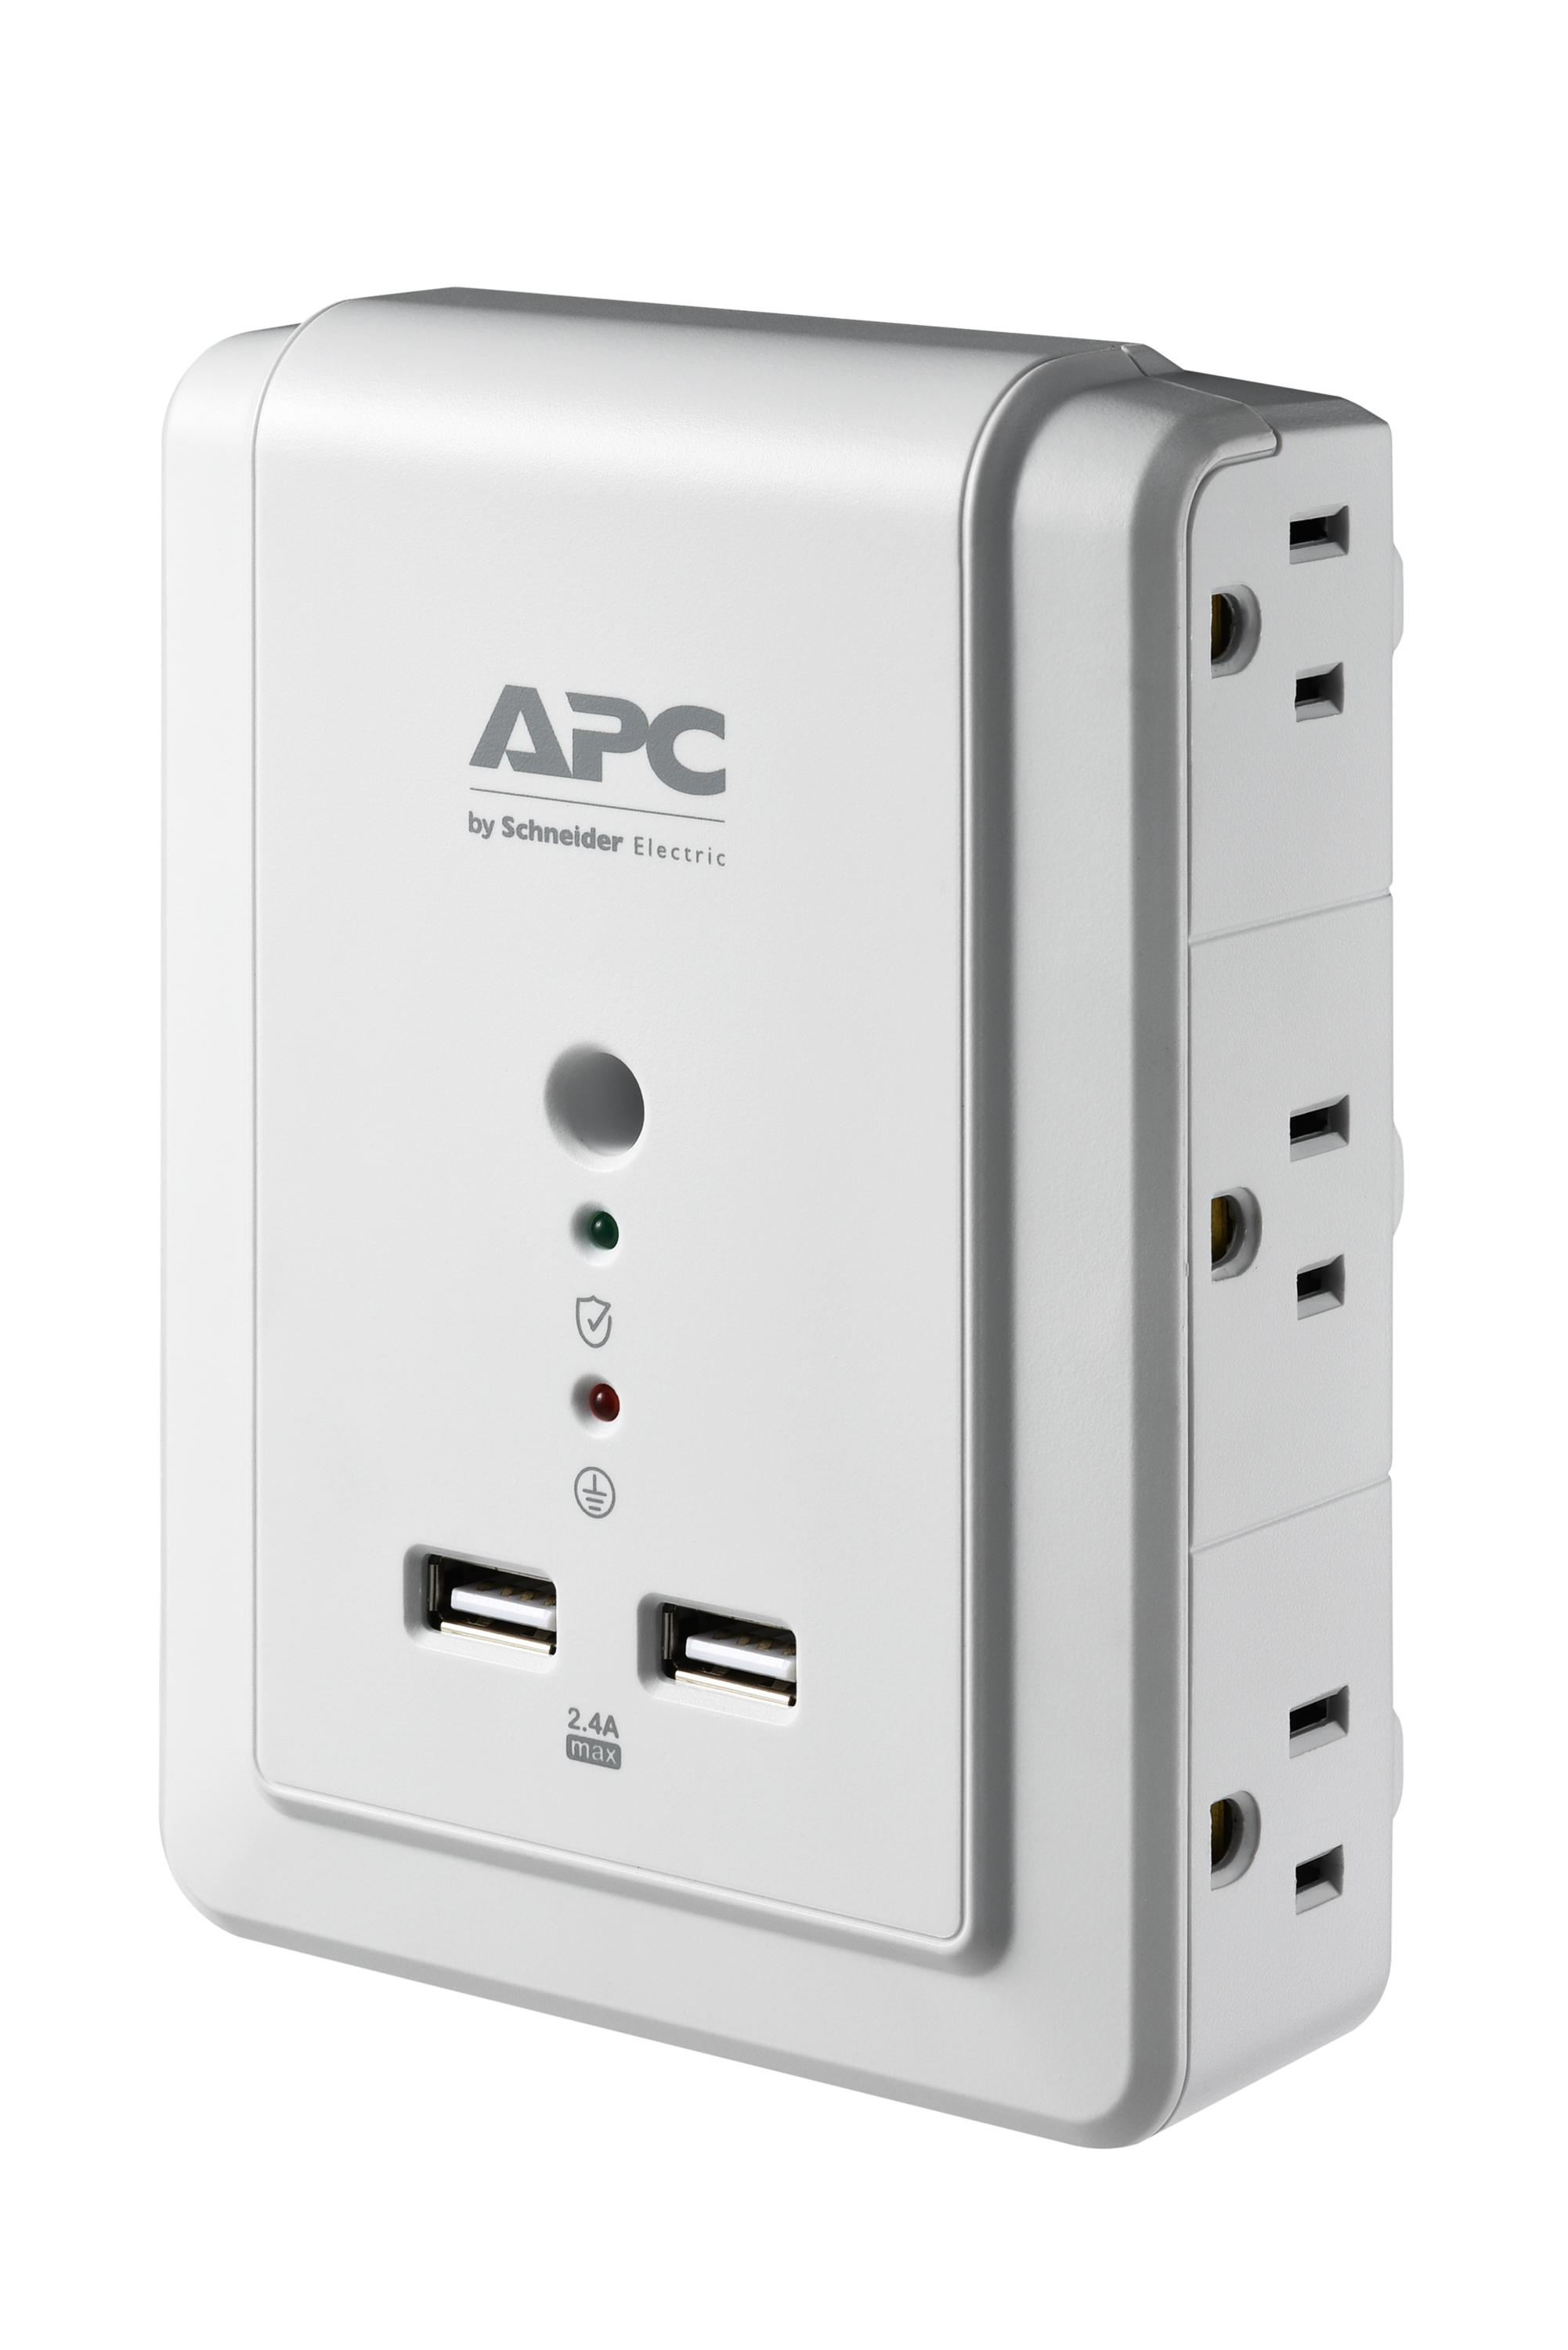 APC 6-Outlet Wall Surge Protector 1080 Joules with USB Charger Ports ...